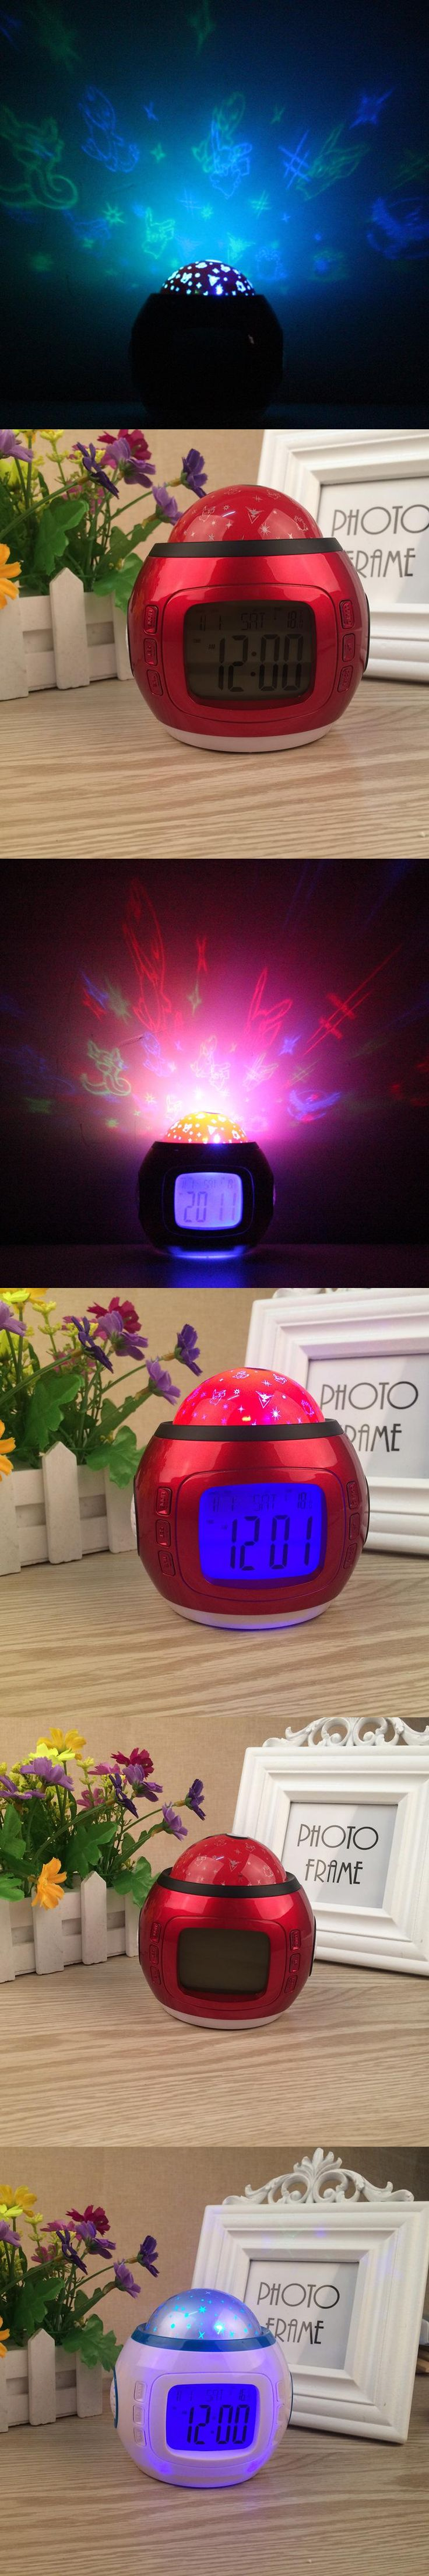 Best 25 small clock ideas on pinterest clocks scandinavian small clock color change multipurpose digital led projector kids alarm clock nightlight electronic small clock amipublicfo Images